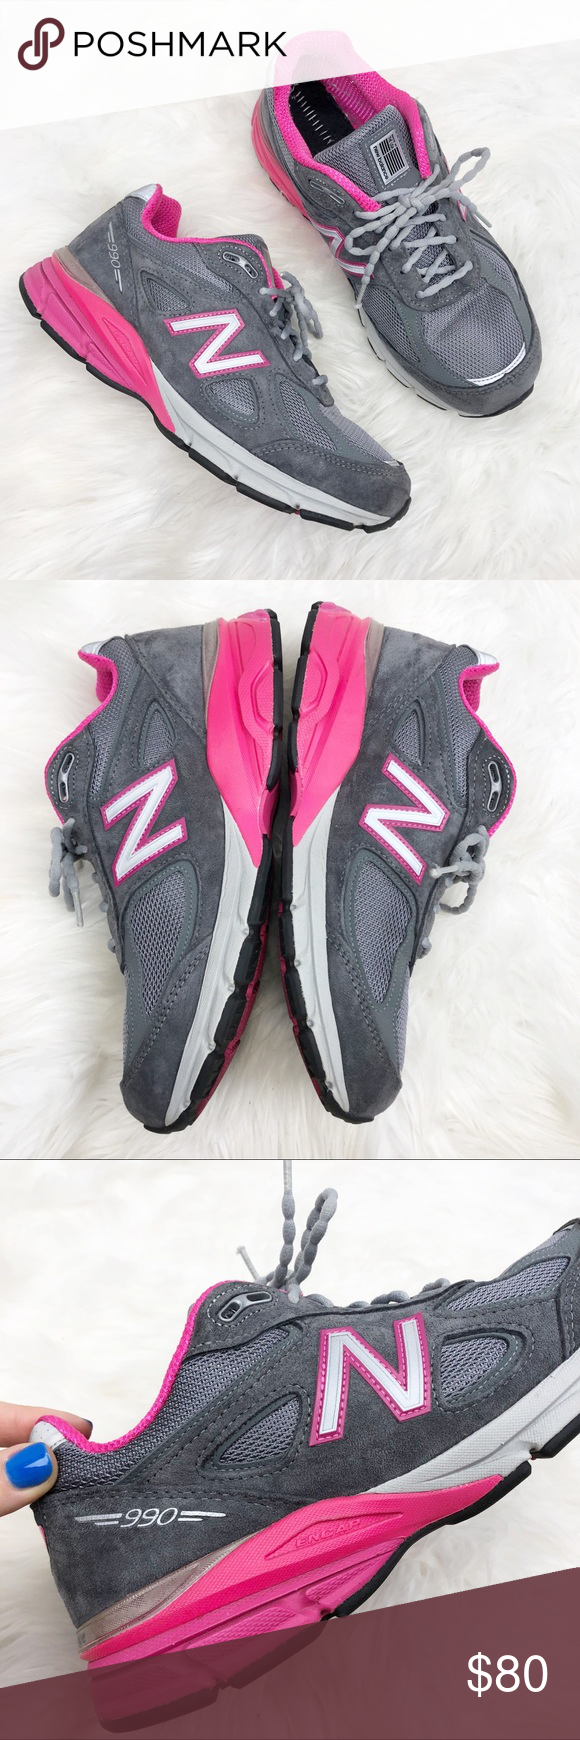 buy online aed19 97dd2 New Balance 990v4 Suede Sneakers Sz 9 New Balance 990 ...